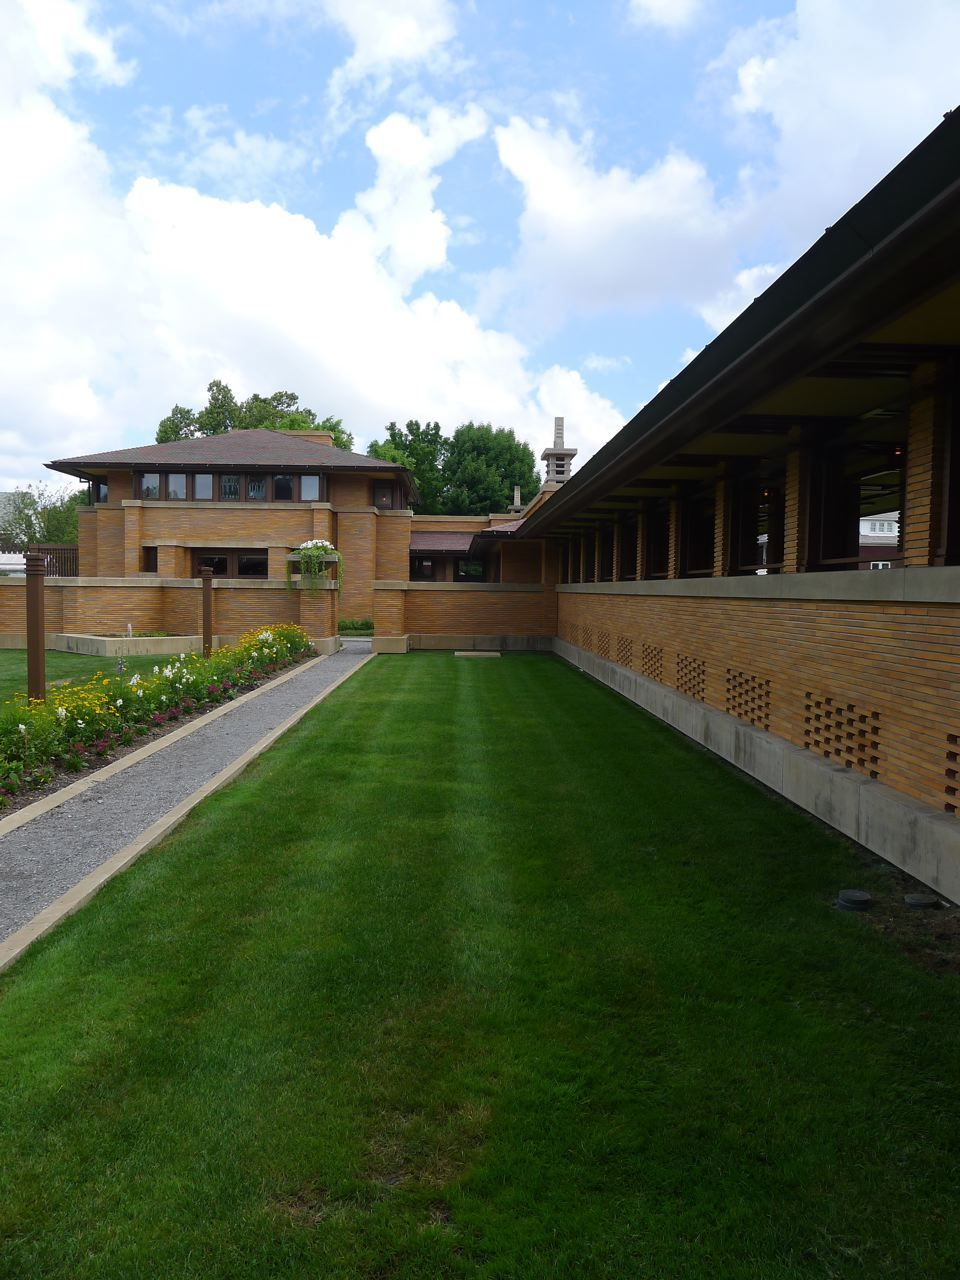 From the rear of Frank Lloyd Wright's Martin house, the pergola extends back to the conservatory (under the pagoda) and the carriage house on the left.